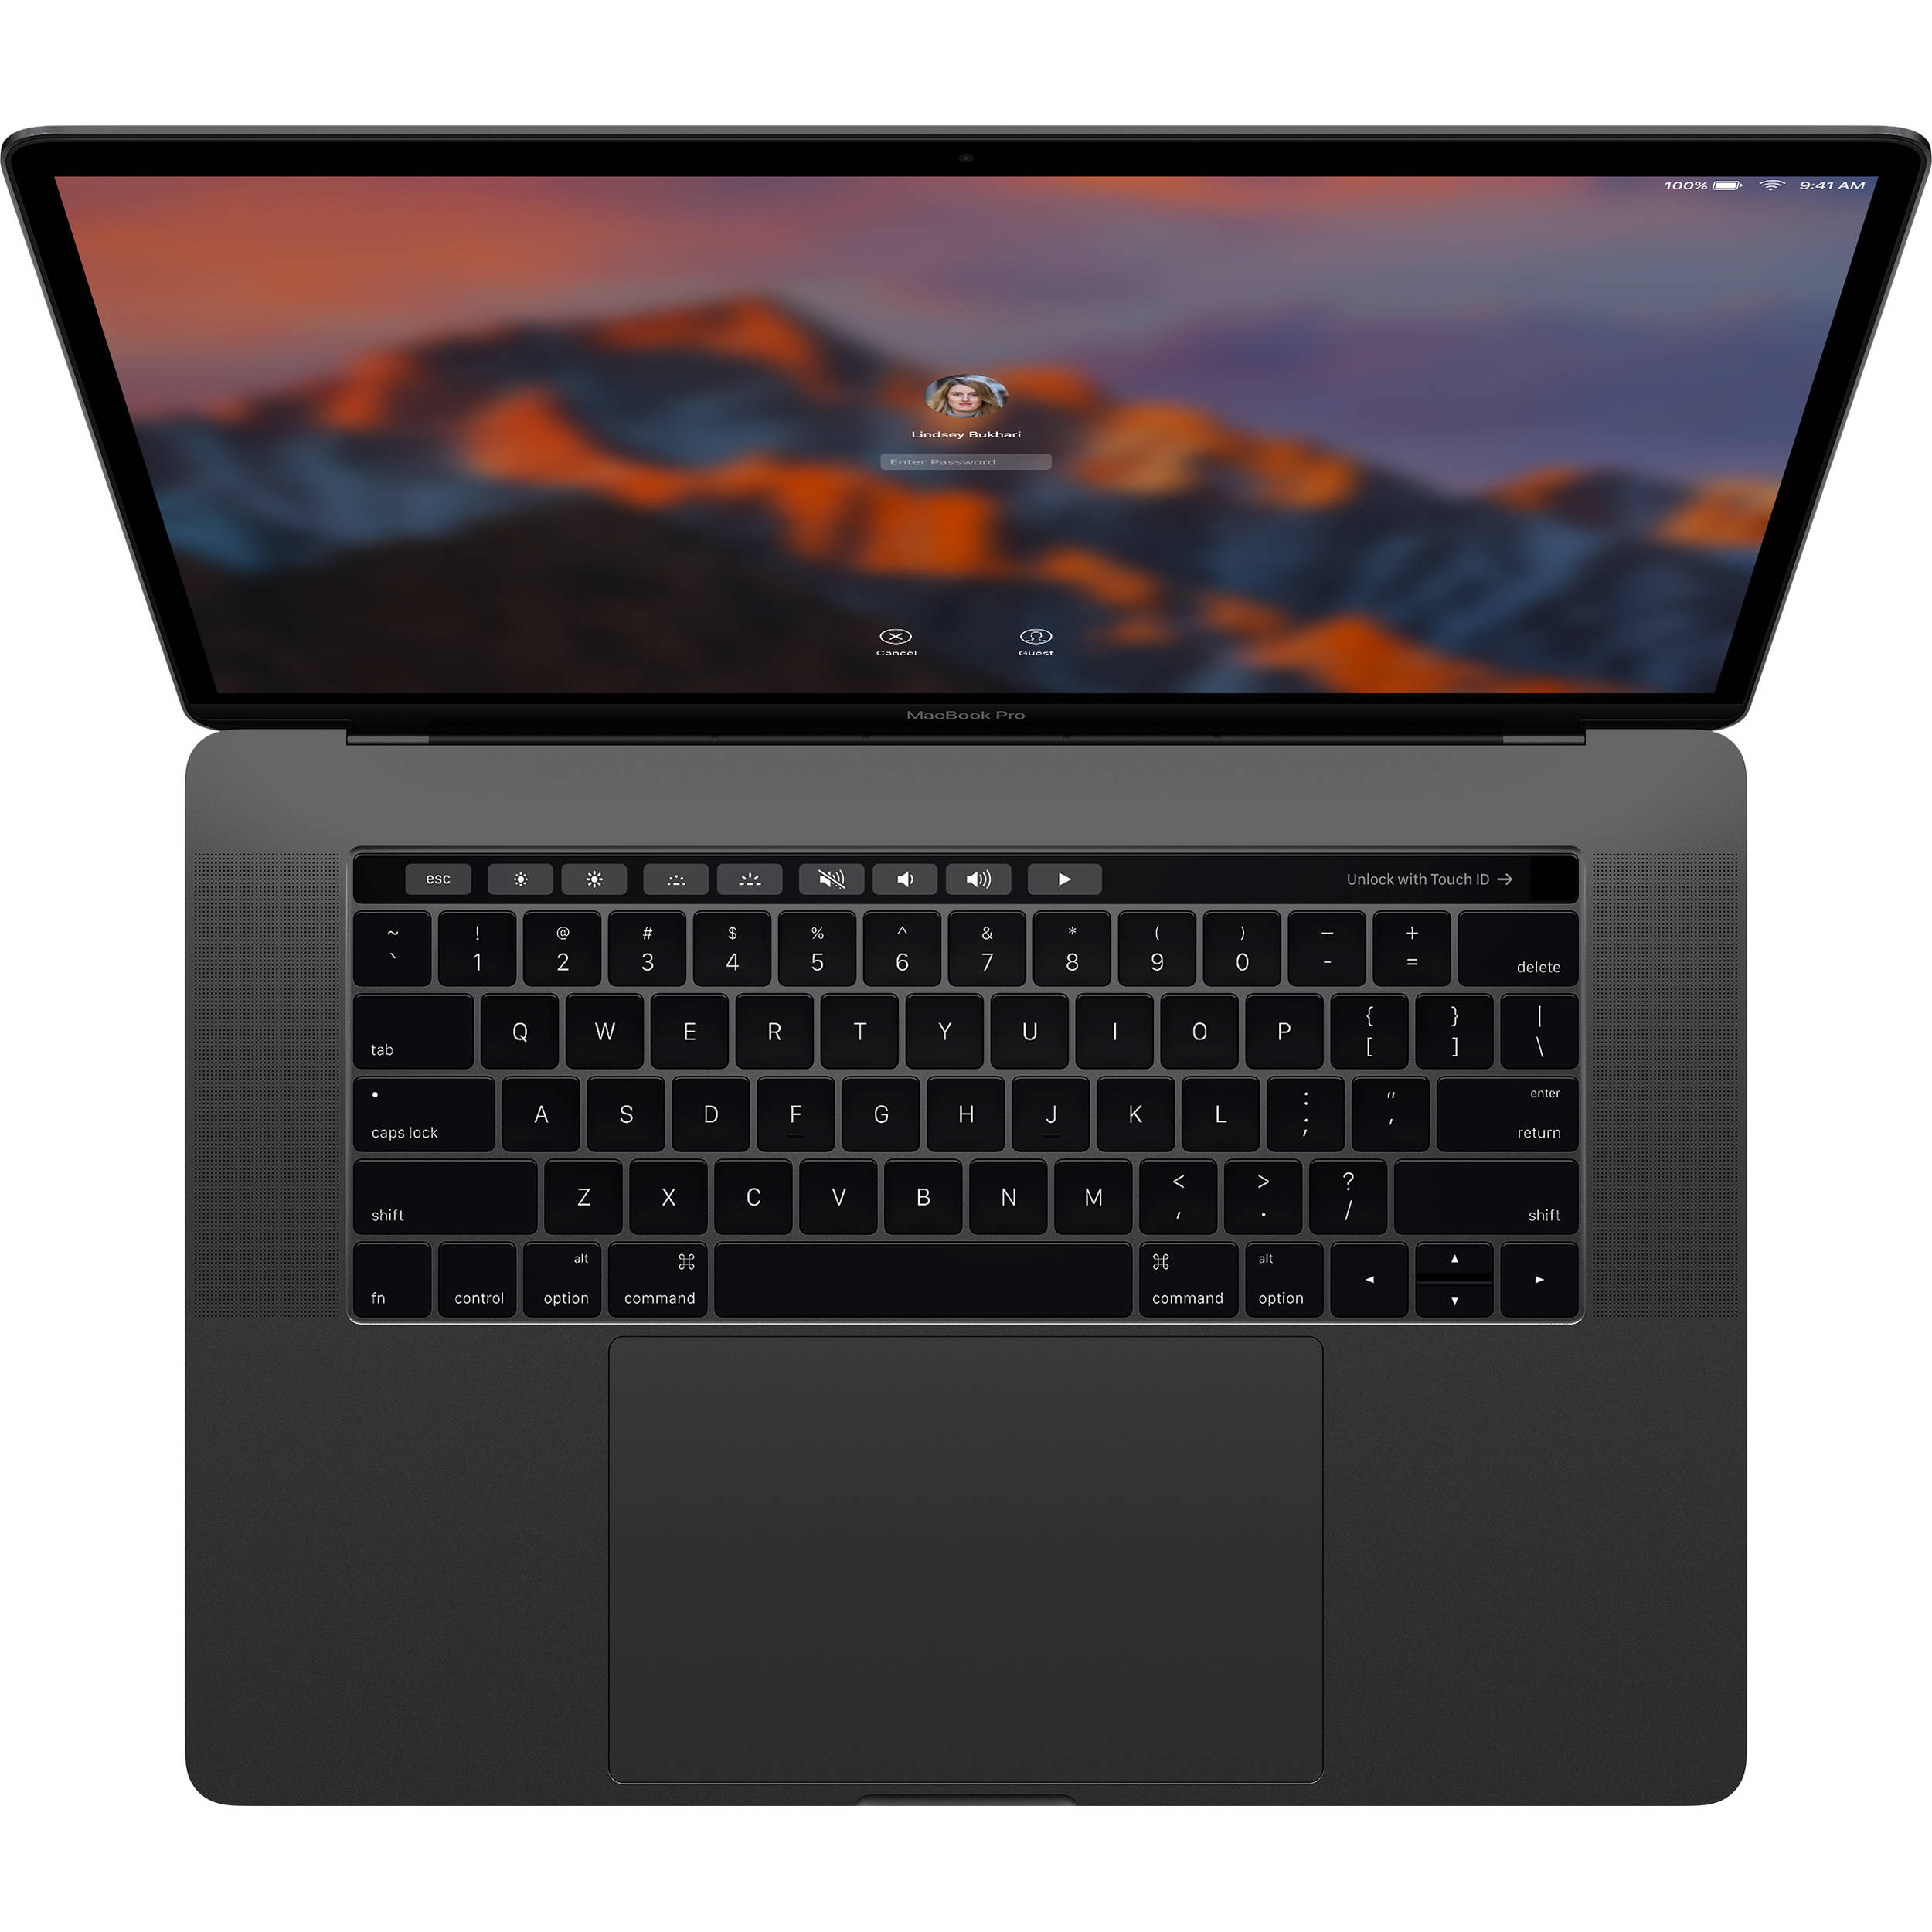 MPTT2 - MacBook Pro 2017 15 inch Quad I7 3.1Ghz 2TB SSD OPTION (SPACE GRAY) New 99%